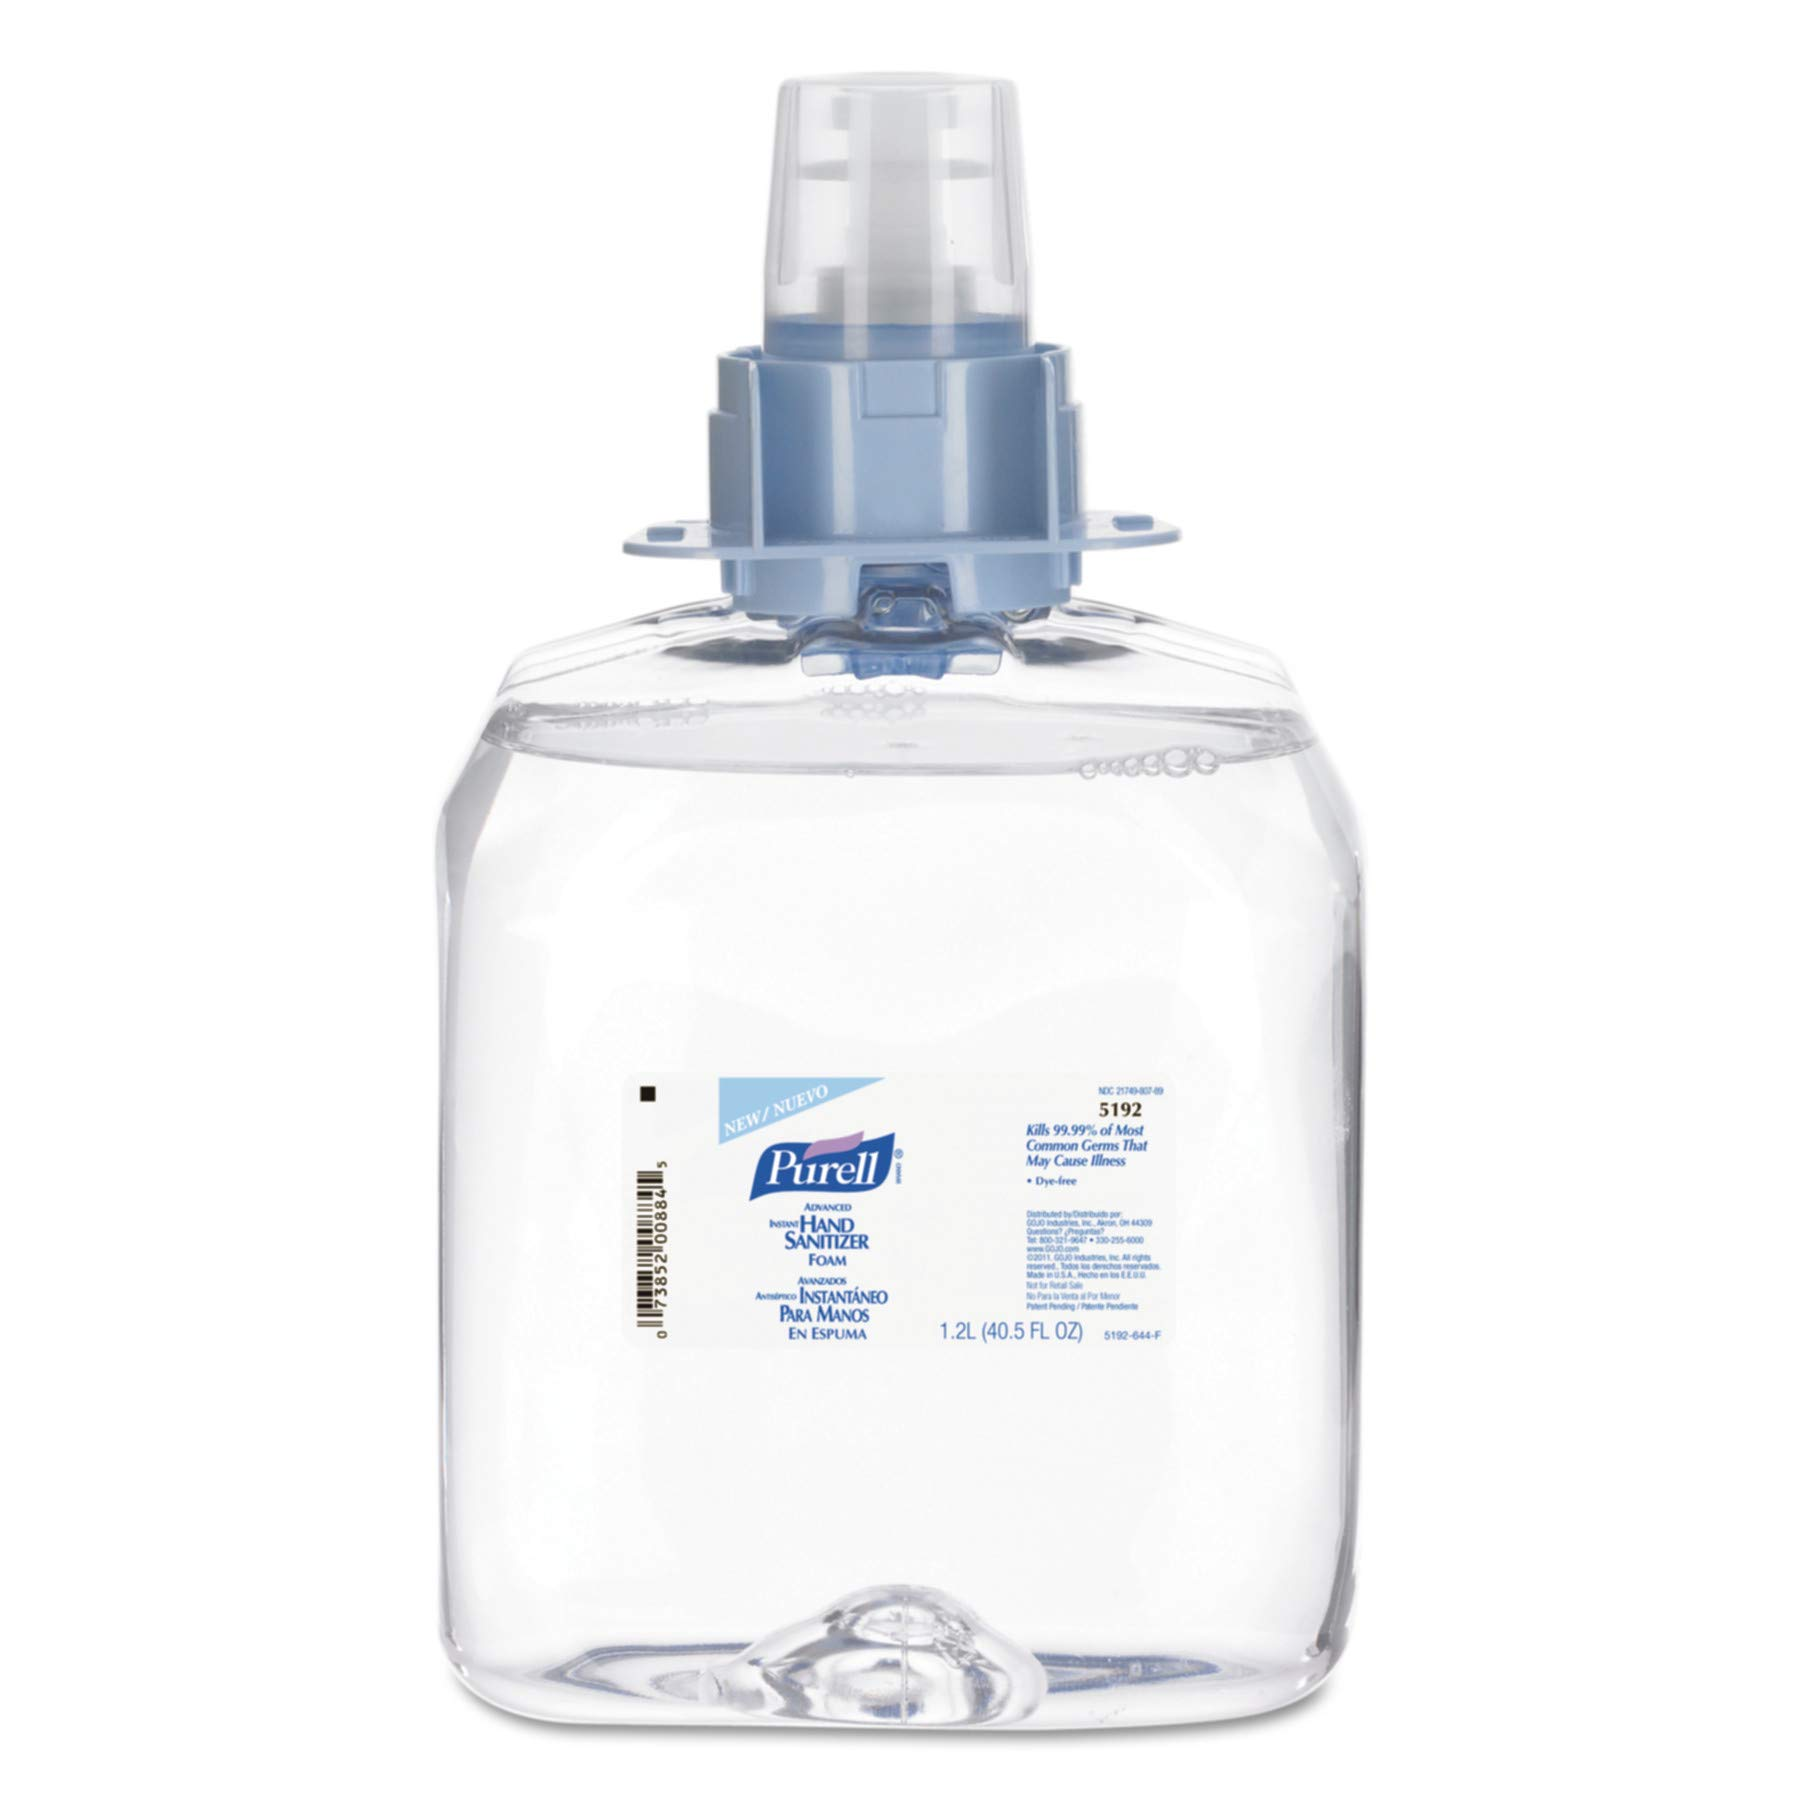 PURELL 519203CT Advanced FMX-12 Foam Instant Hand Sanitizer Refill, w/Moisturizers, 1200mL (Case of 3) by Purell